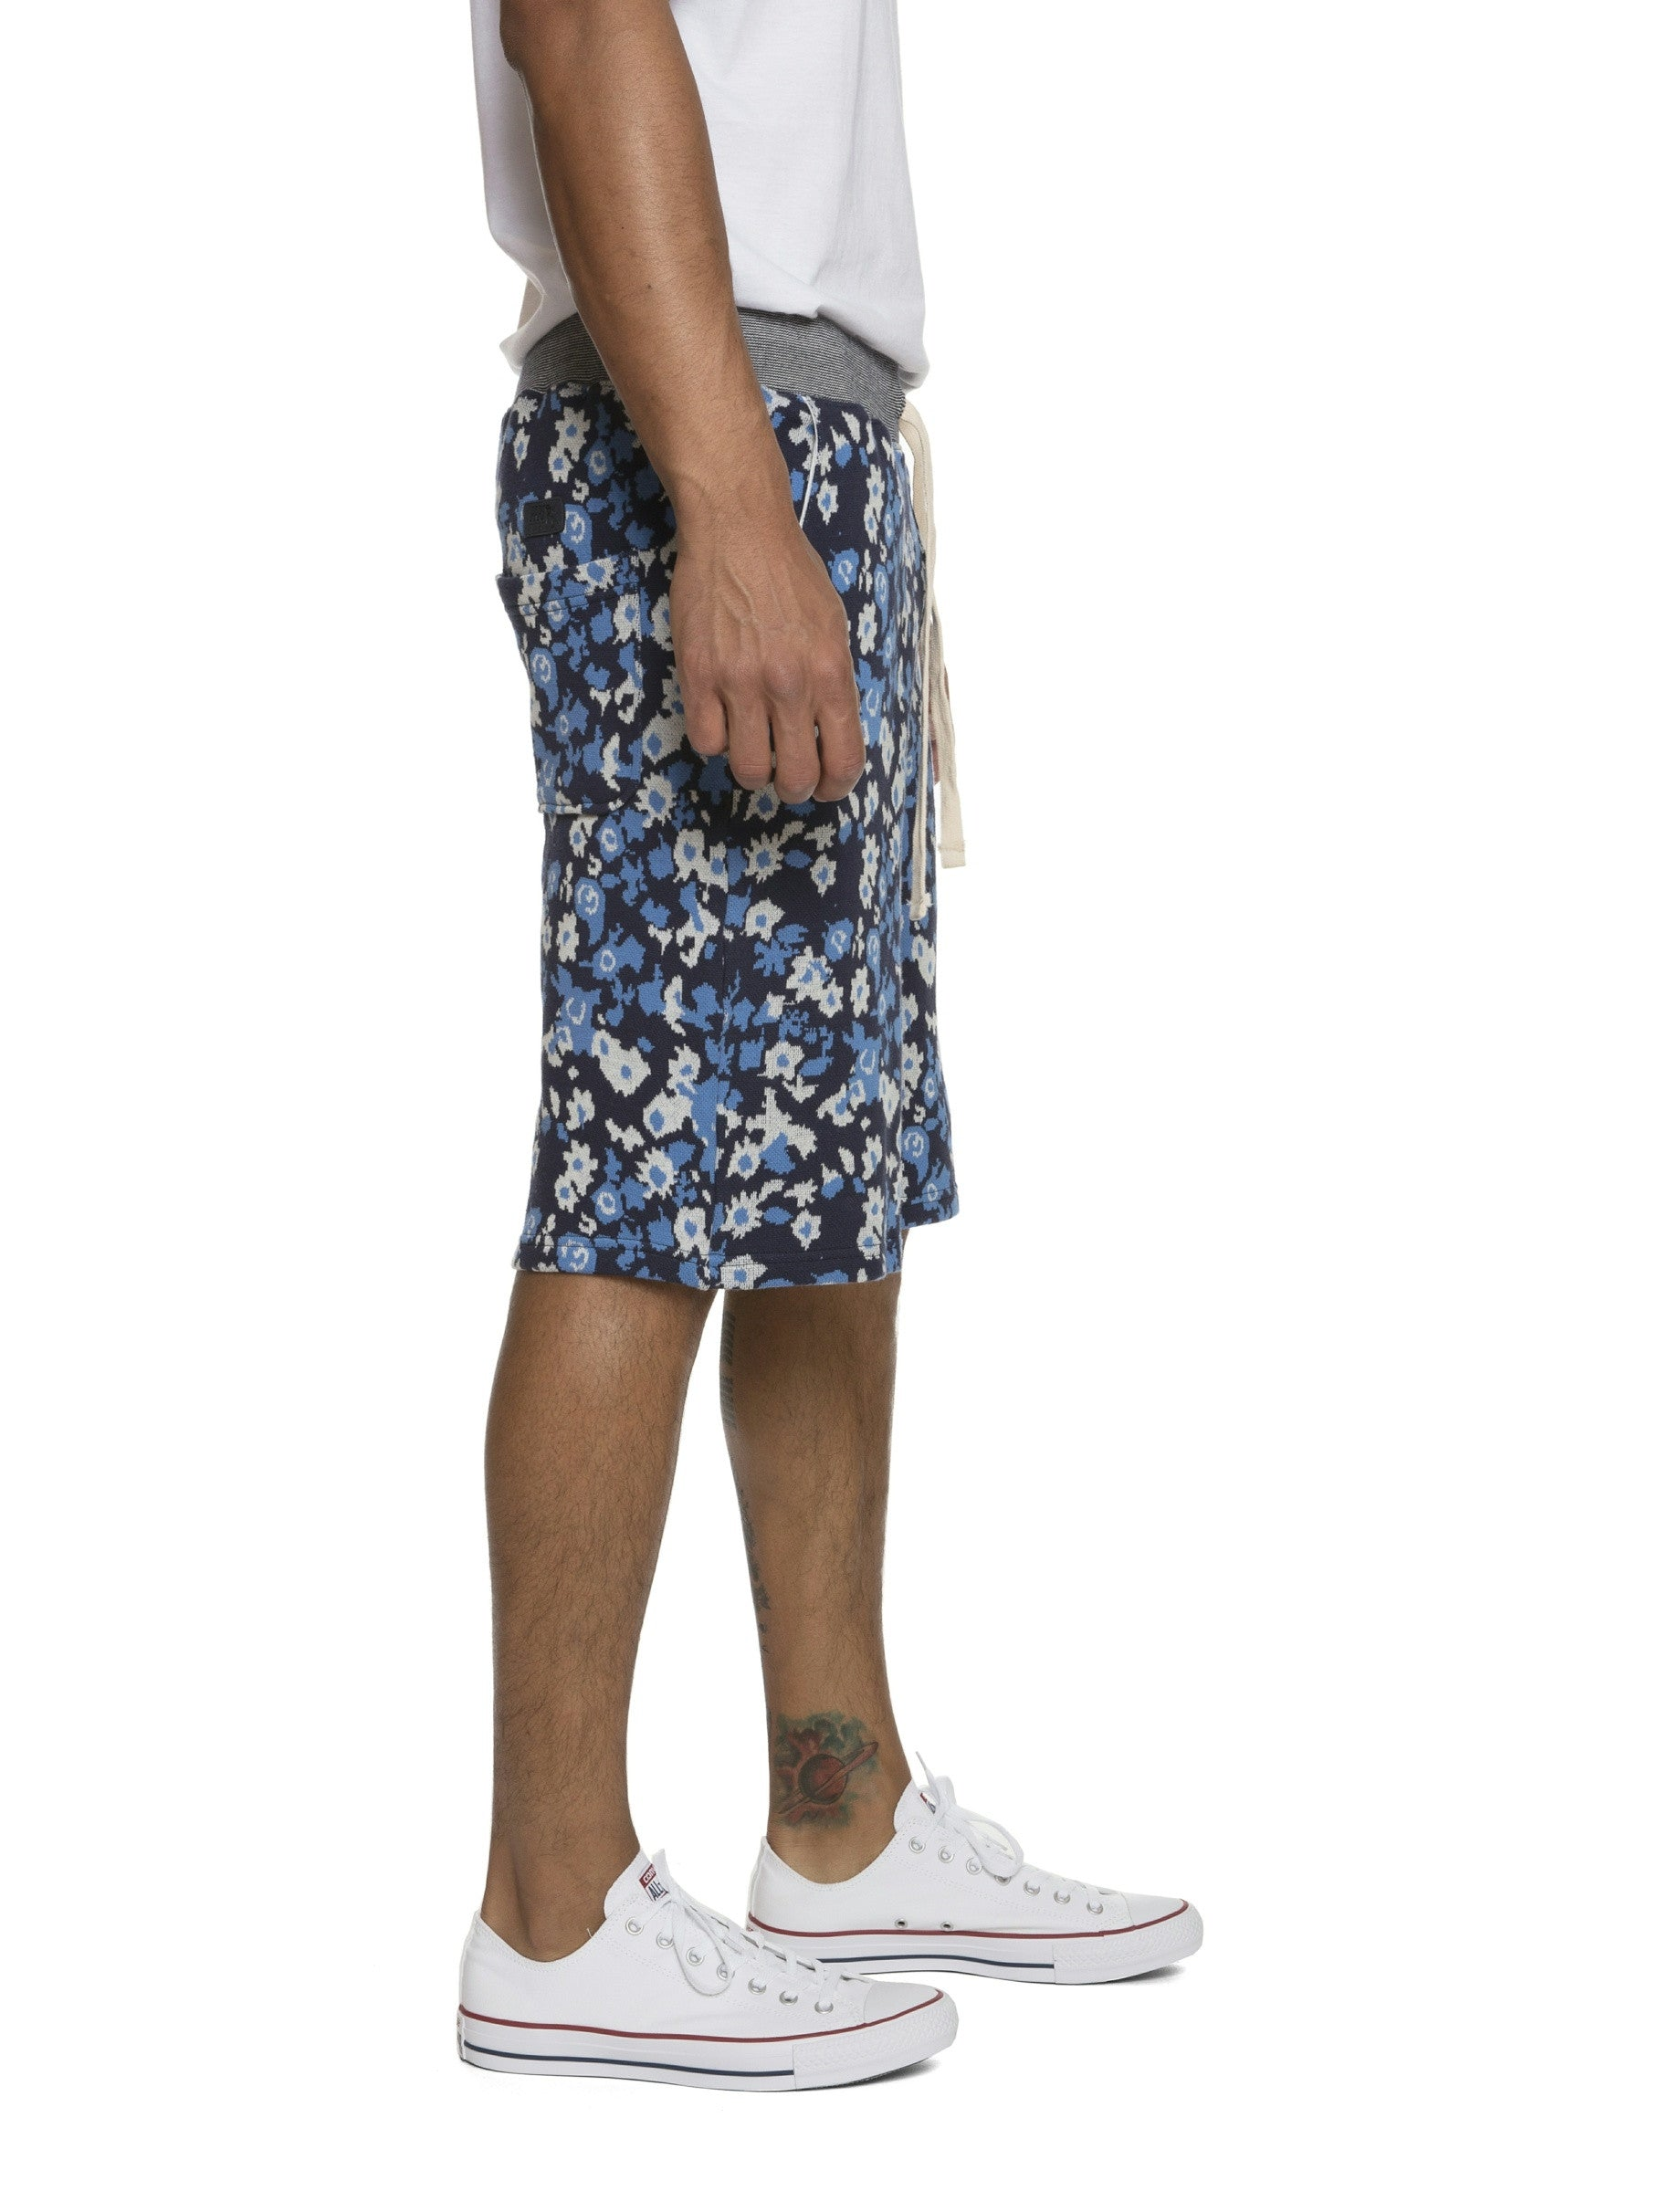 Floral Printed Board Short